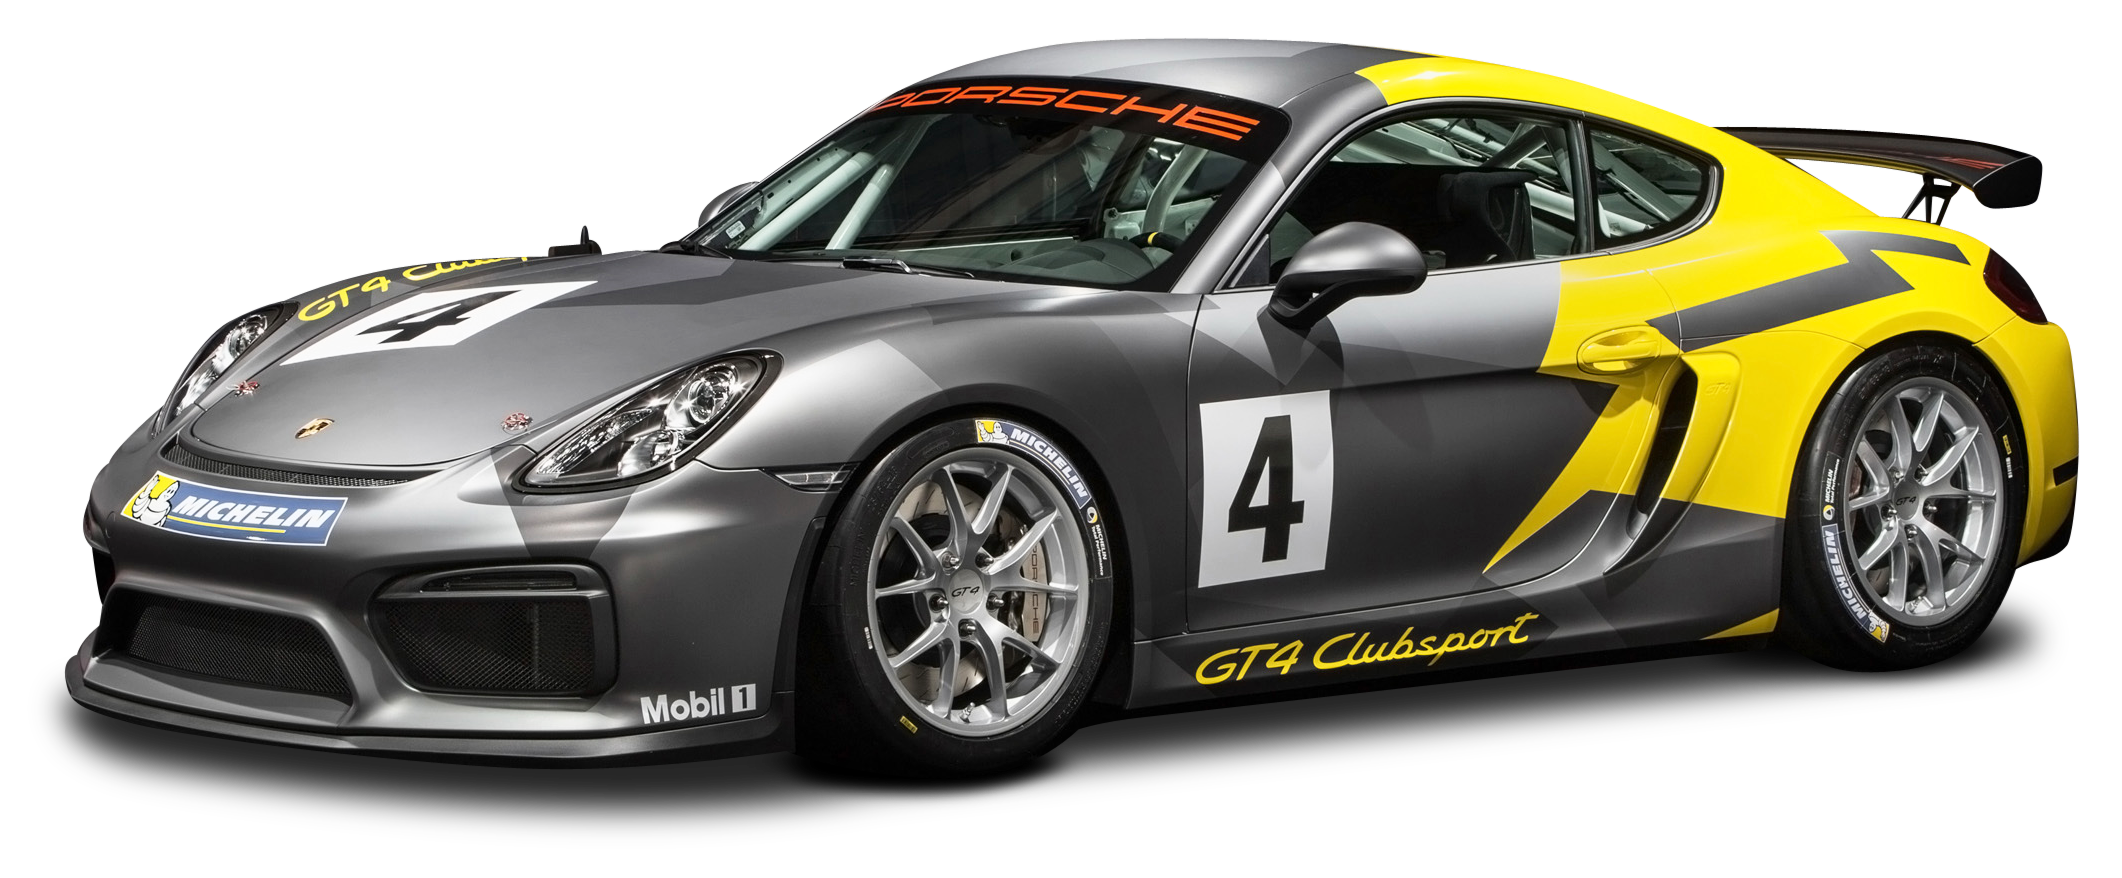 porsche cayman gt4 clubsport racing car png image pngpix fruits and vegetables clipart png fruits and vegetables clip art color